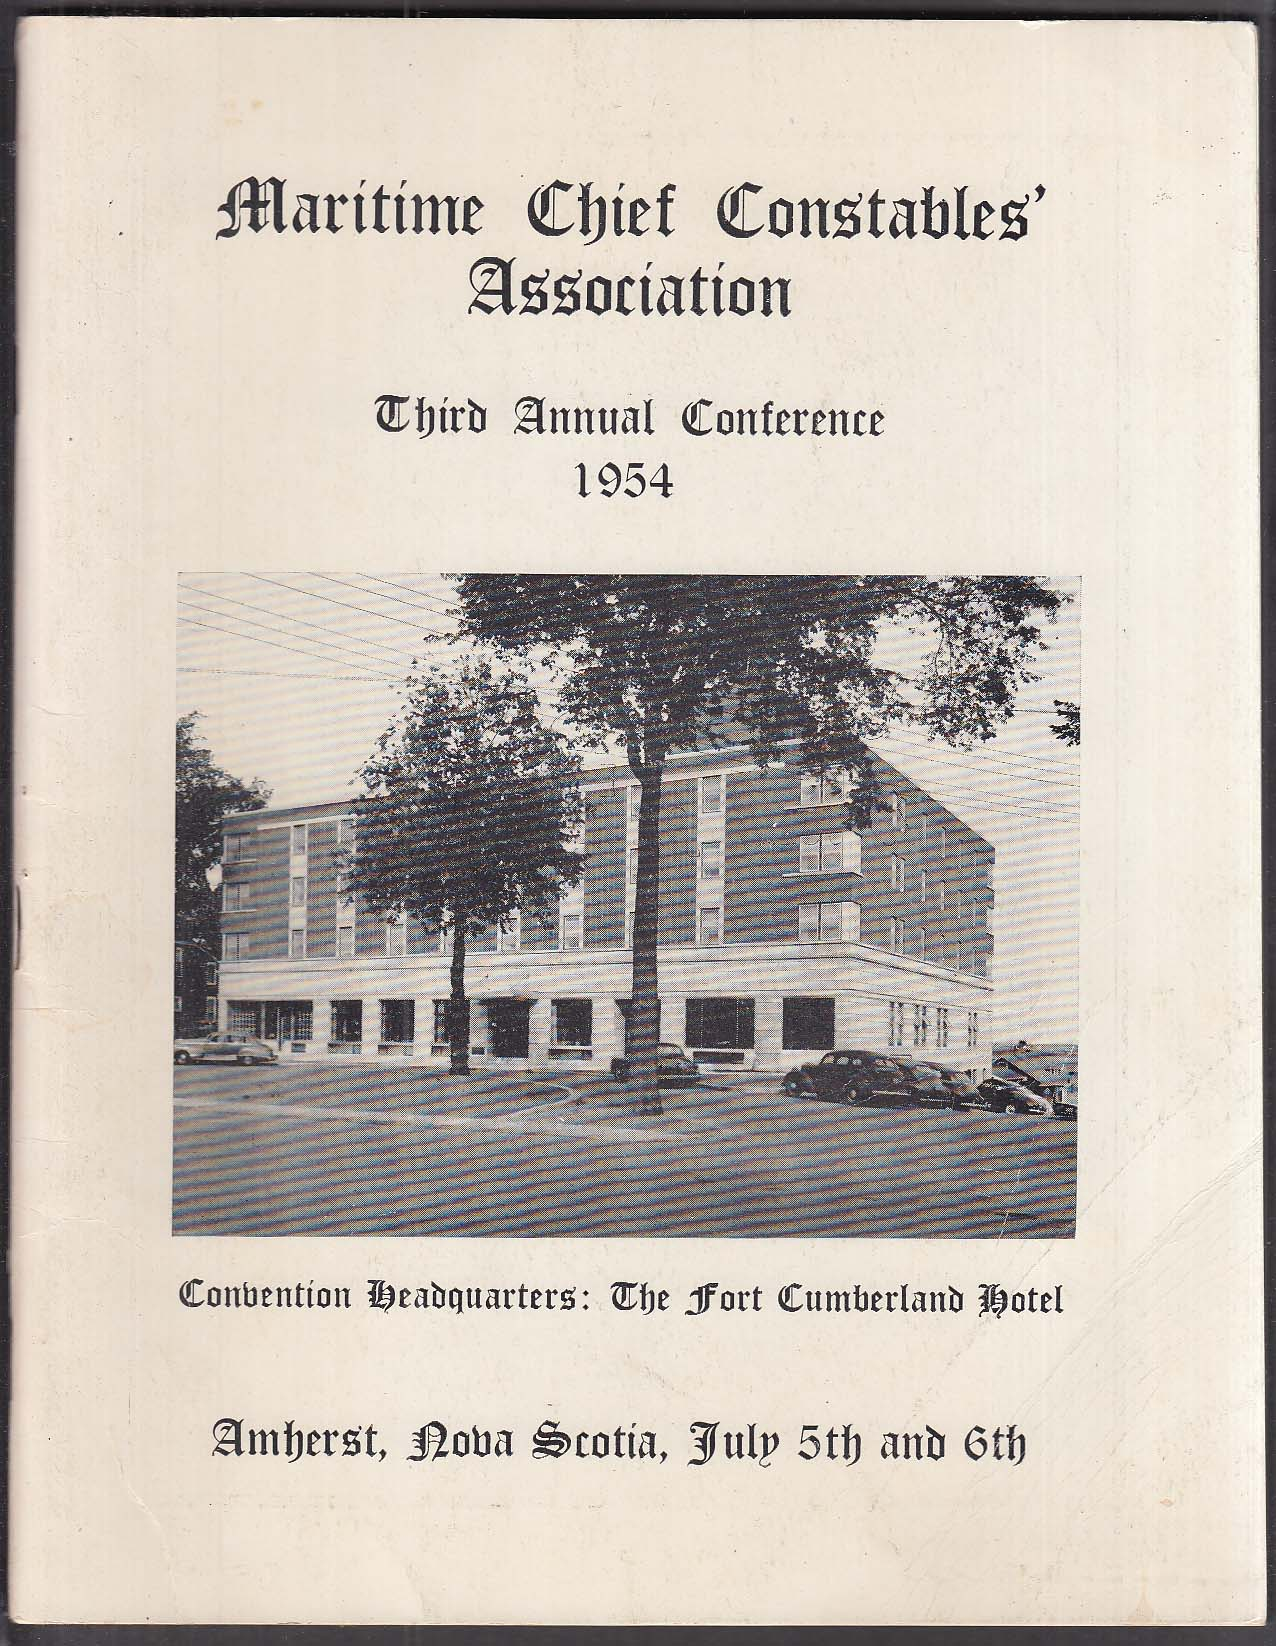 Maritime Chief Constables Association Annual Conference Nova Scotia program 1954